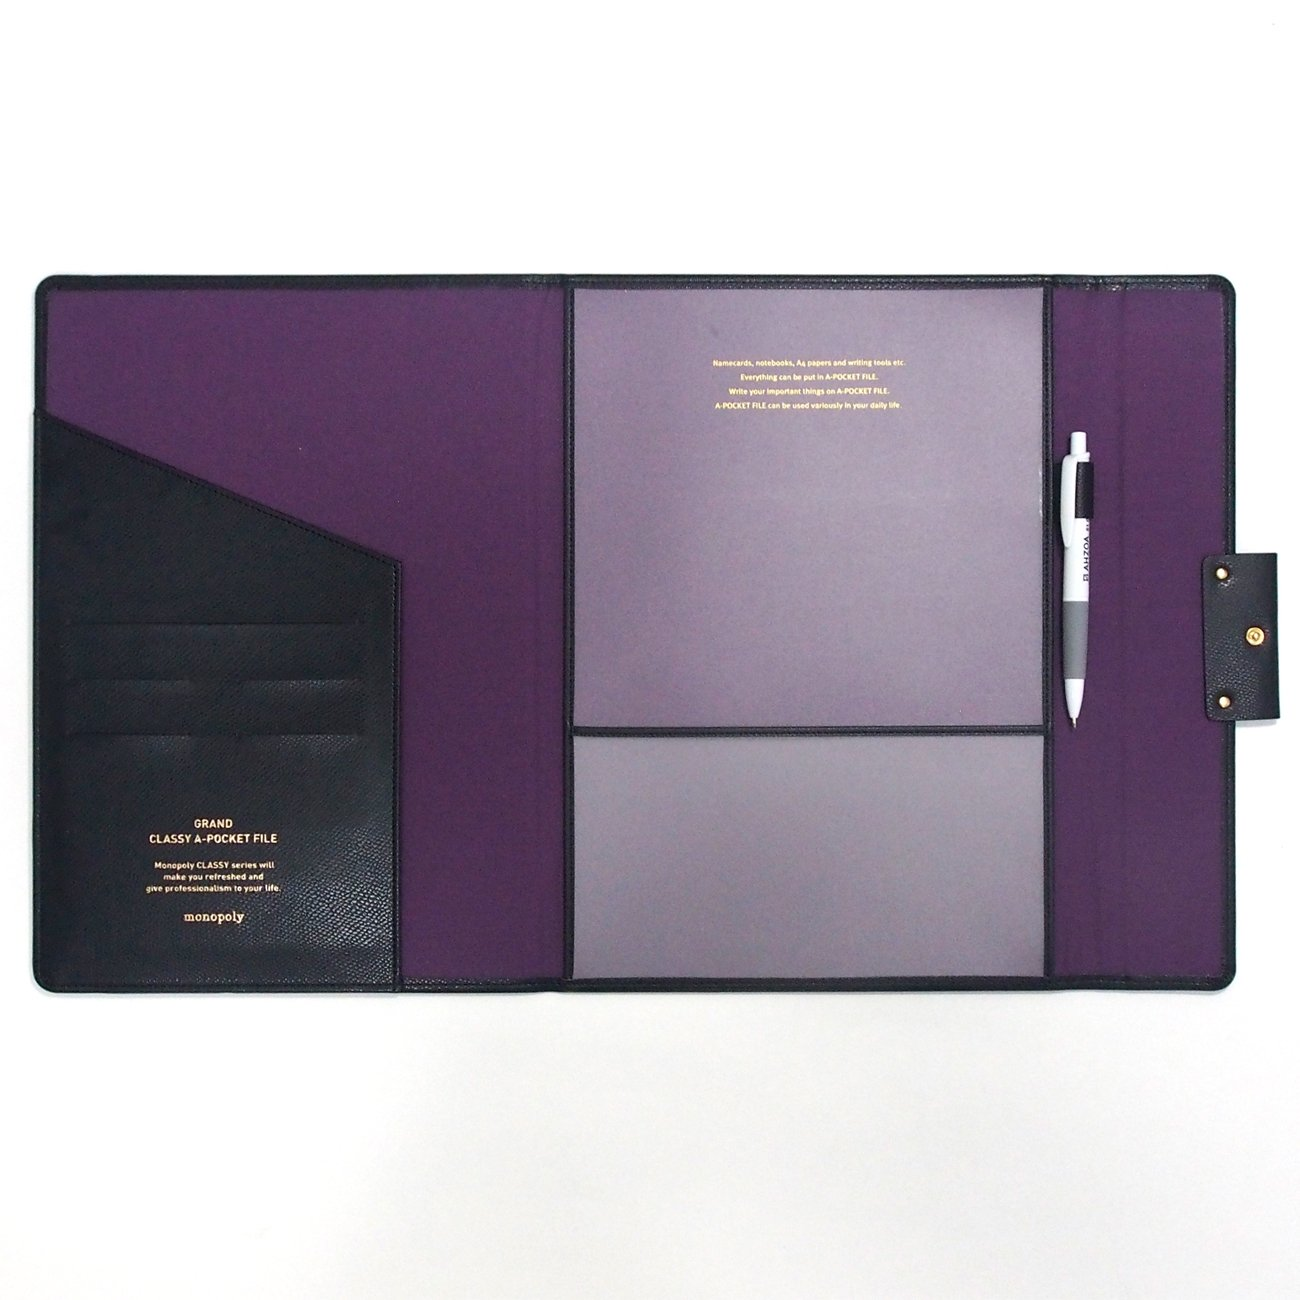 Grand Classy 8 Pockets File Holder with AHZOA Pencil (black) by Monopoly (Image #3)